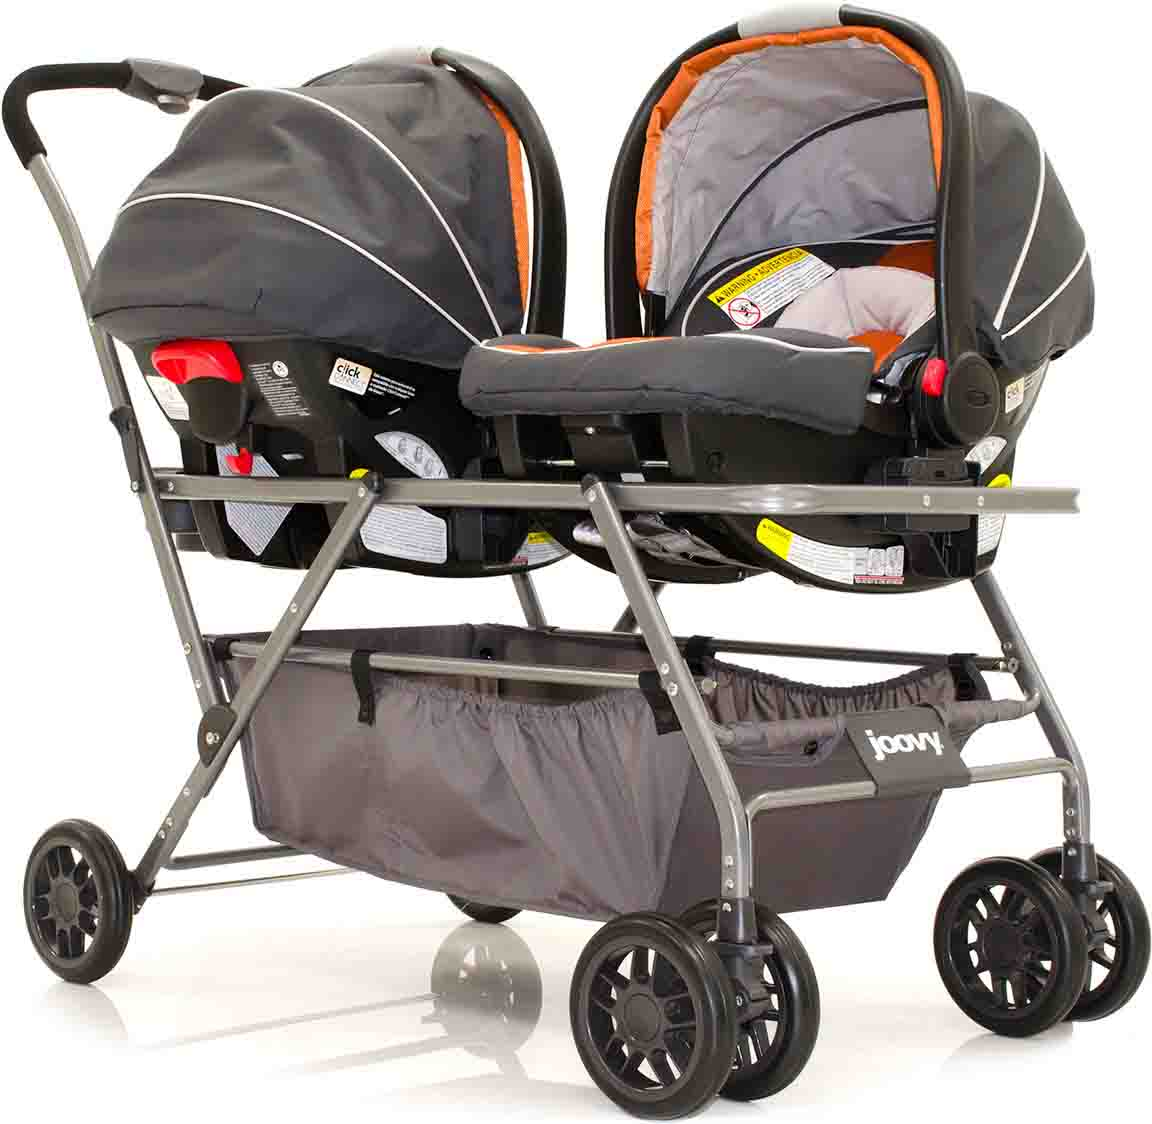 Peg Perego Stroller For Twins Twinroo Infant Car Seat Frame Double Stroller